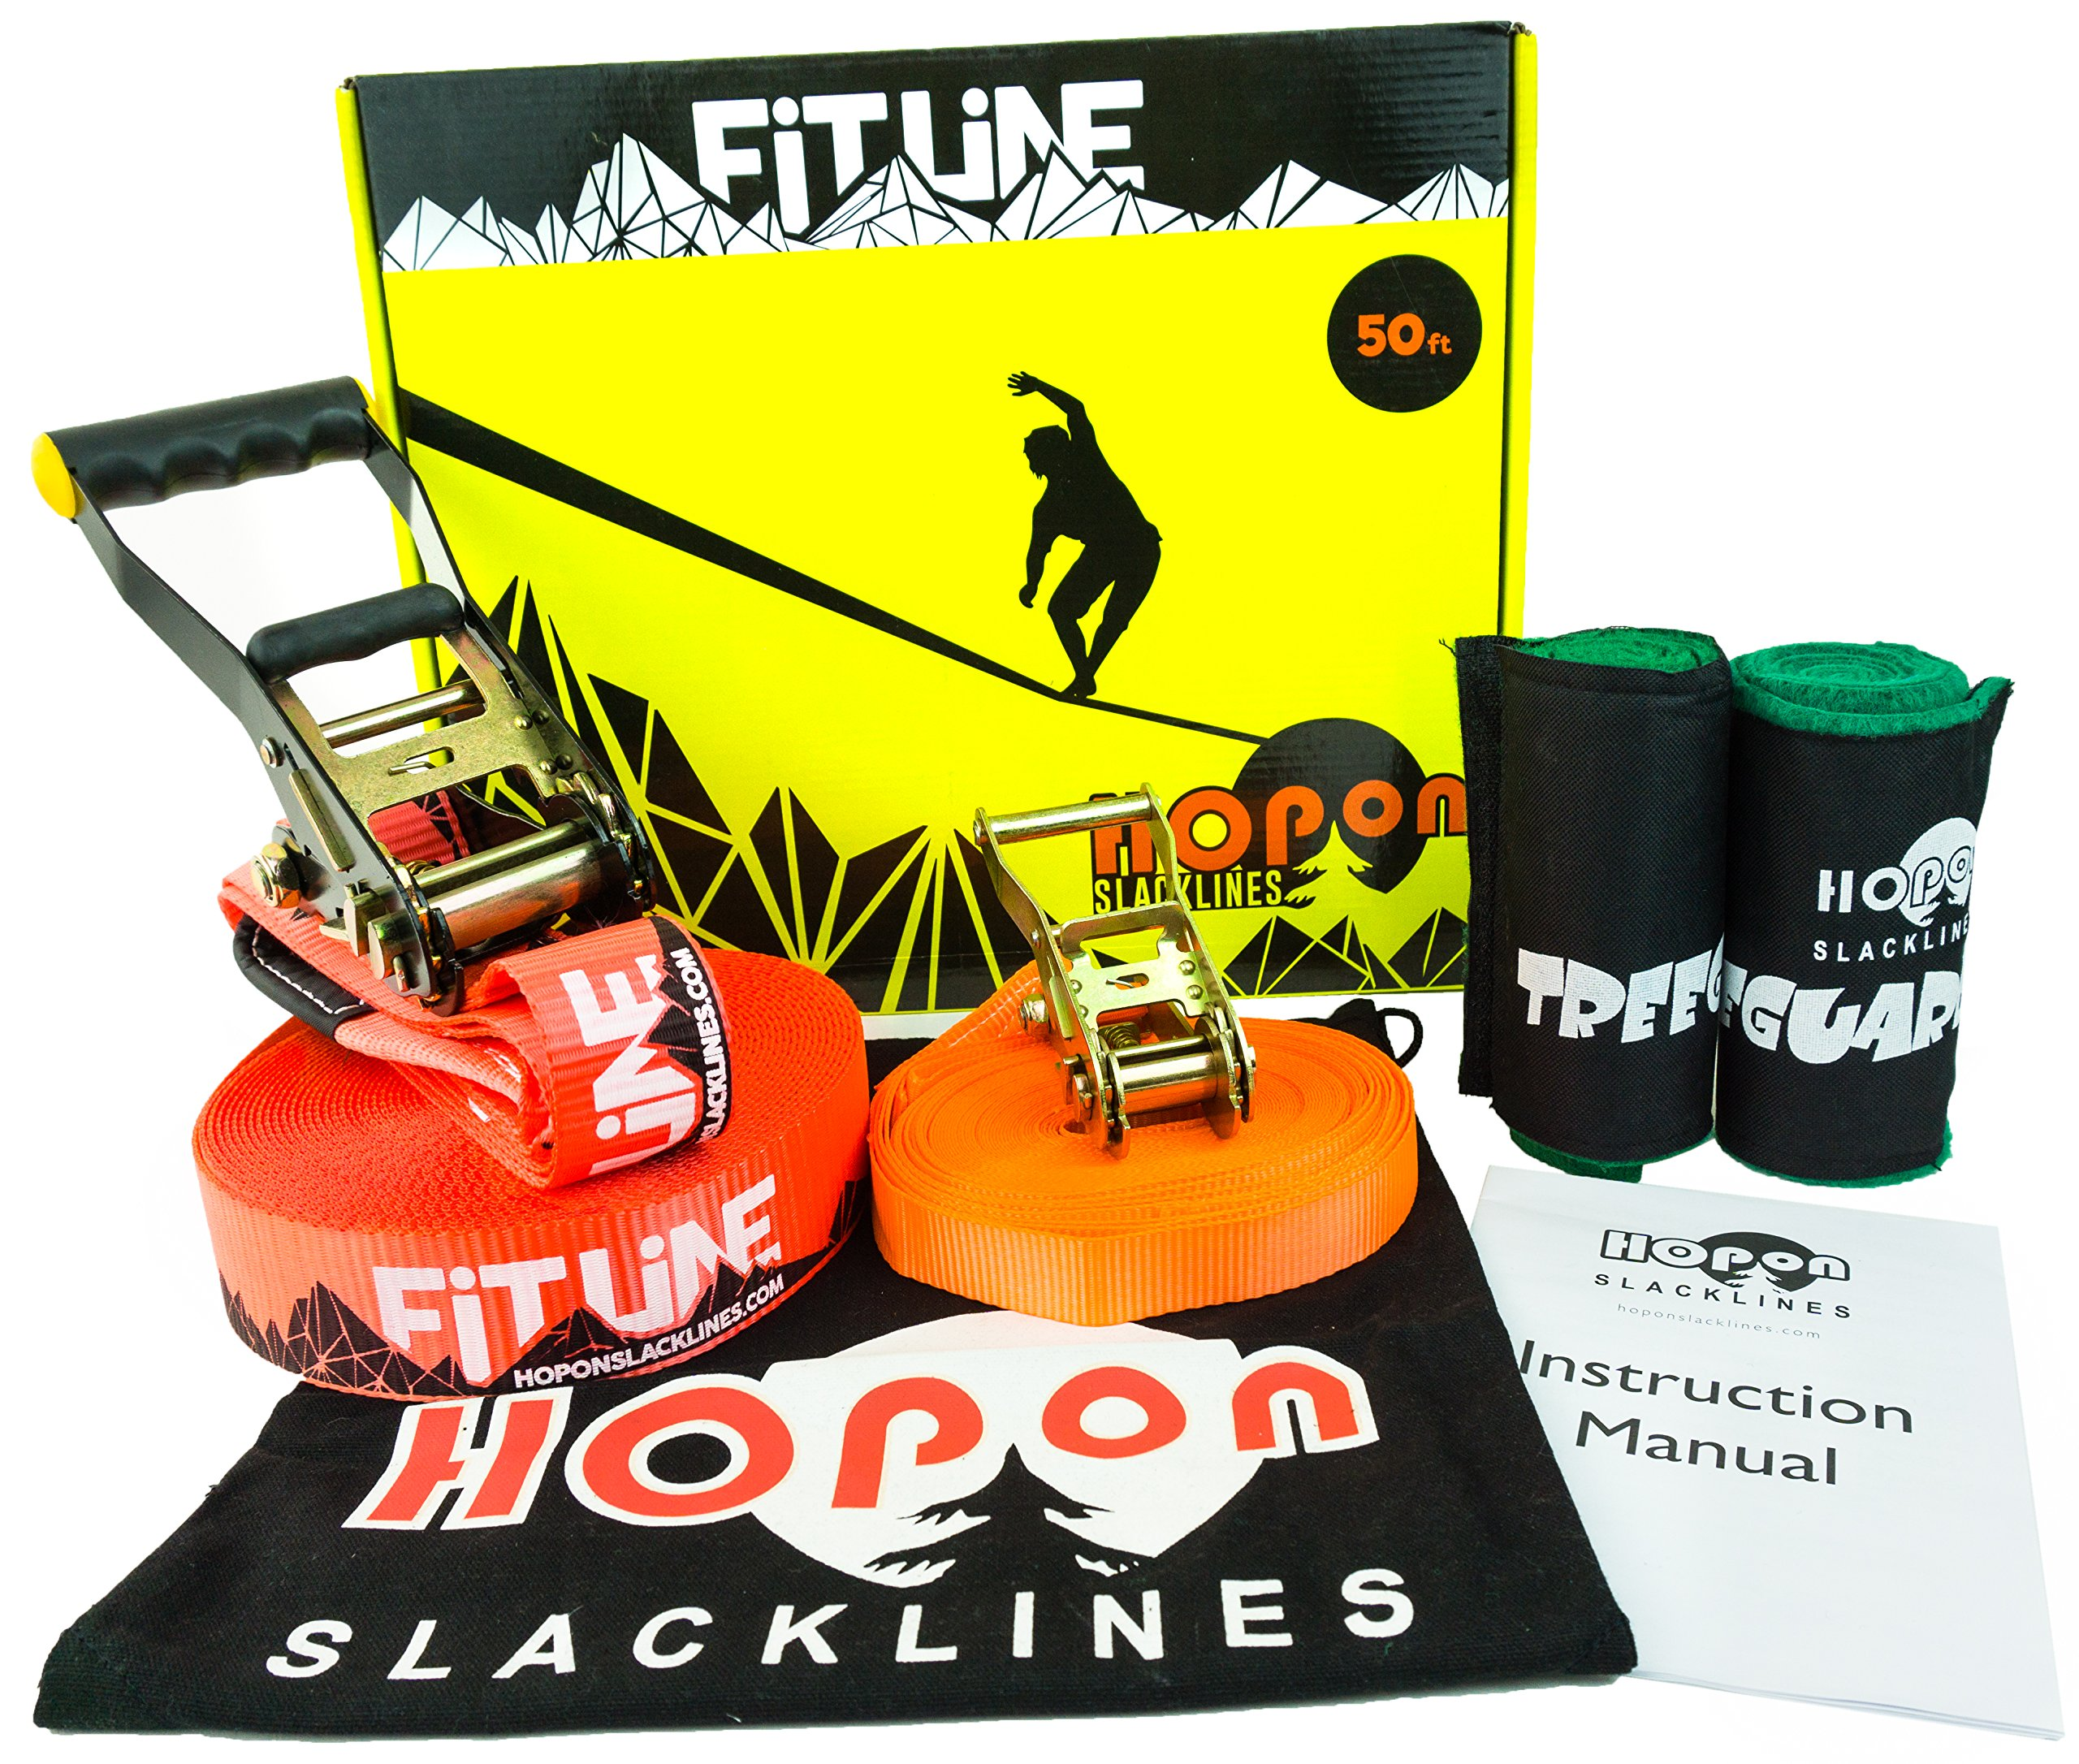 HopOn 50ft Slackline Kit For Beginners with Ratchet, Tree Protection and Training Line - Red by HopOn Slacklines